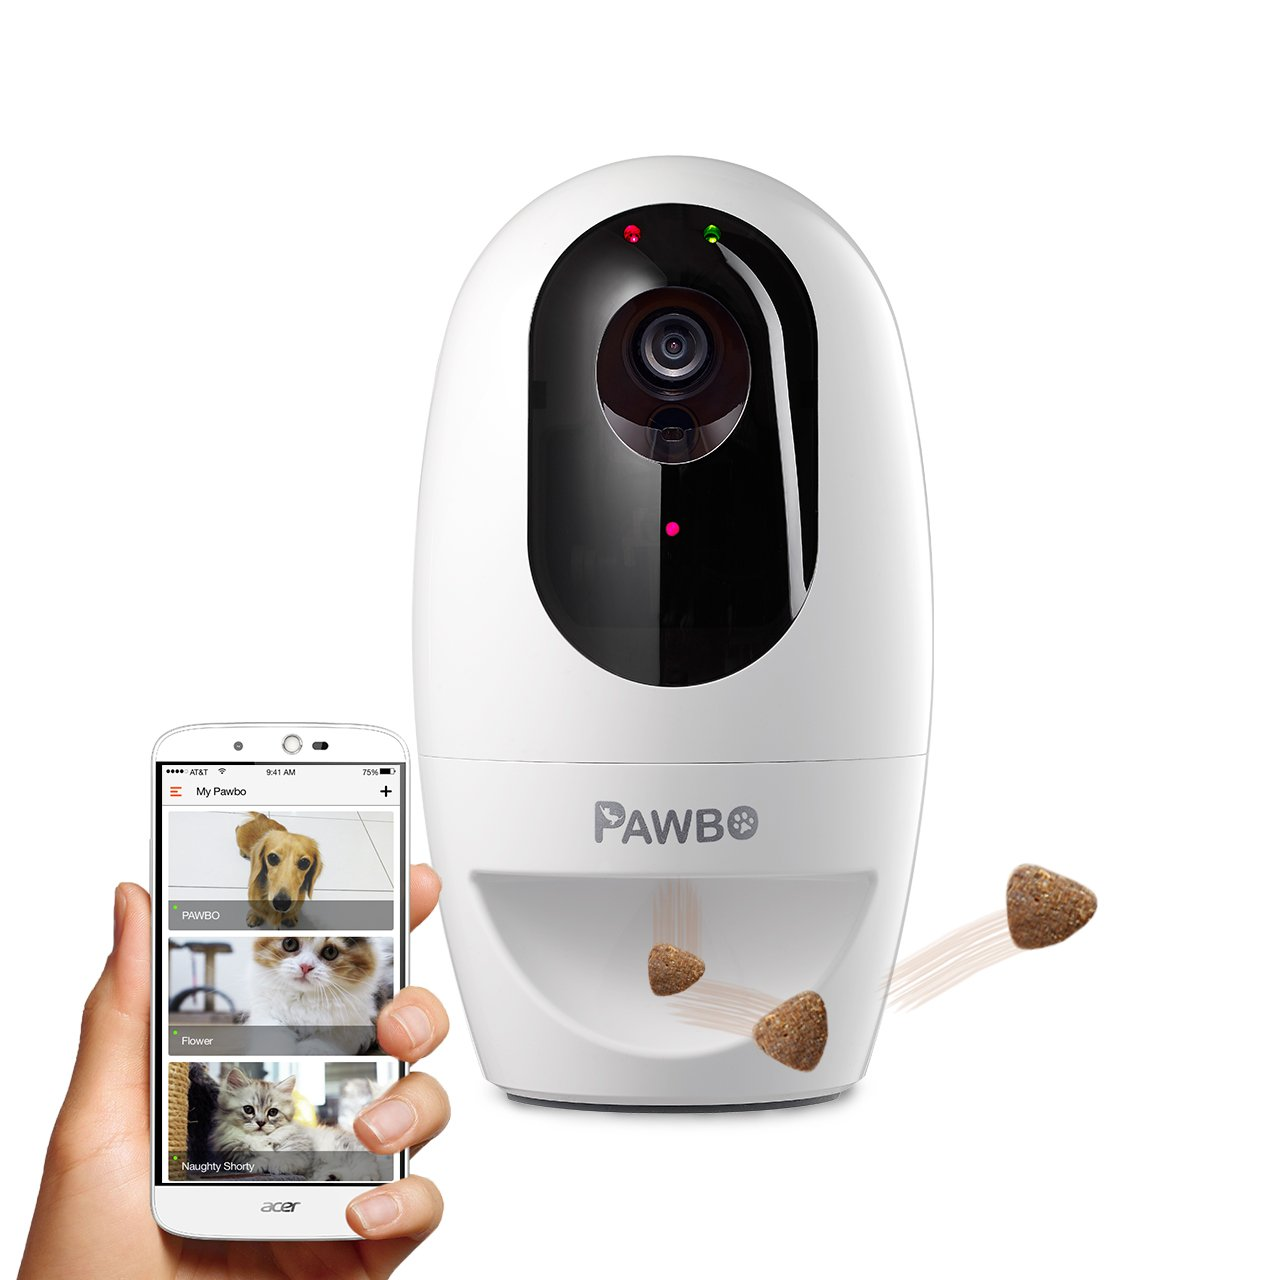 Pawbo Life Wi-Fi Pet Camera: 720p HD Video, 2-Way Audio, Video Recording, Treat Dispenser, and Laser Game PPC-21CL